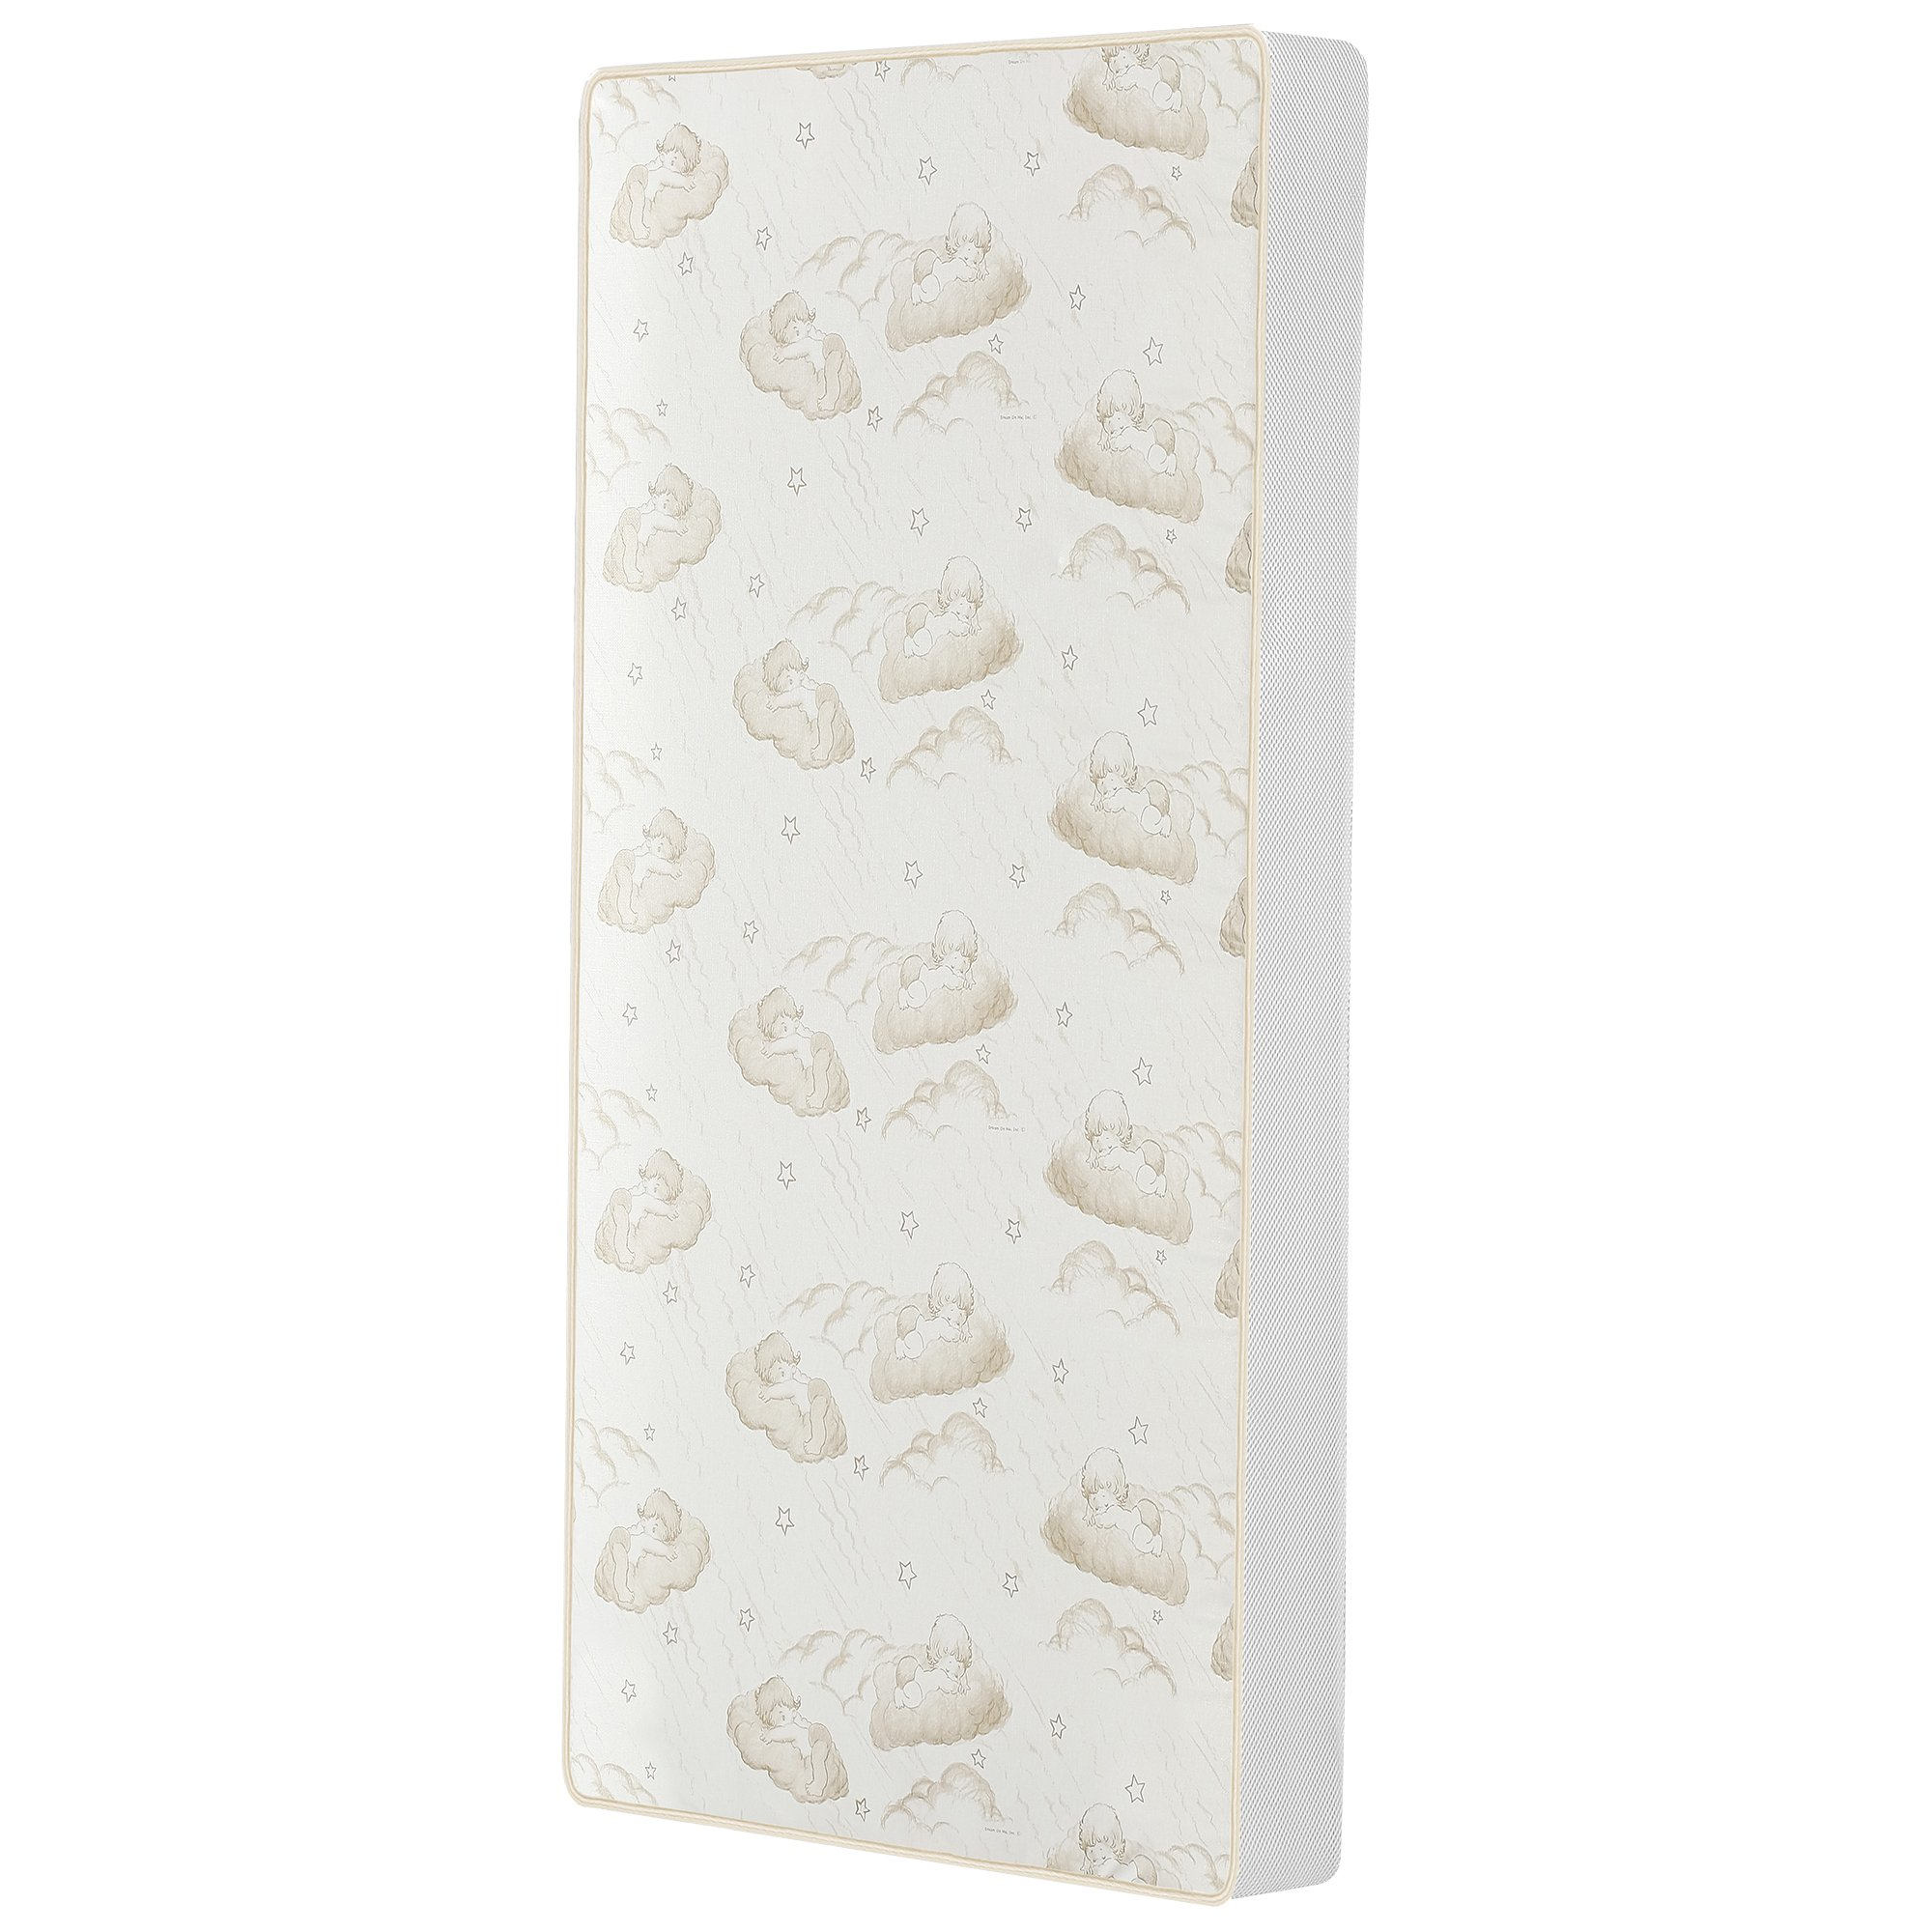 Dream On Me 2-In-1 Breathable Twilight 5'' Spring Coil Crib and Toddler Bed Mattress with Reversible Design, White/Brown